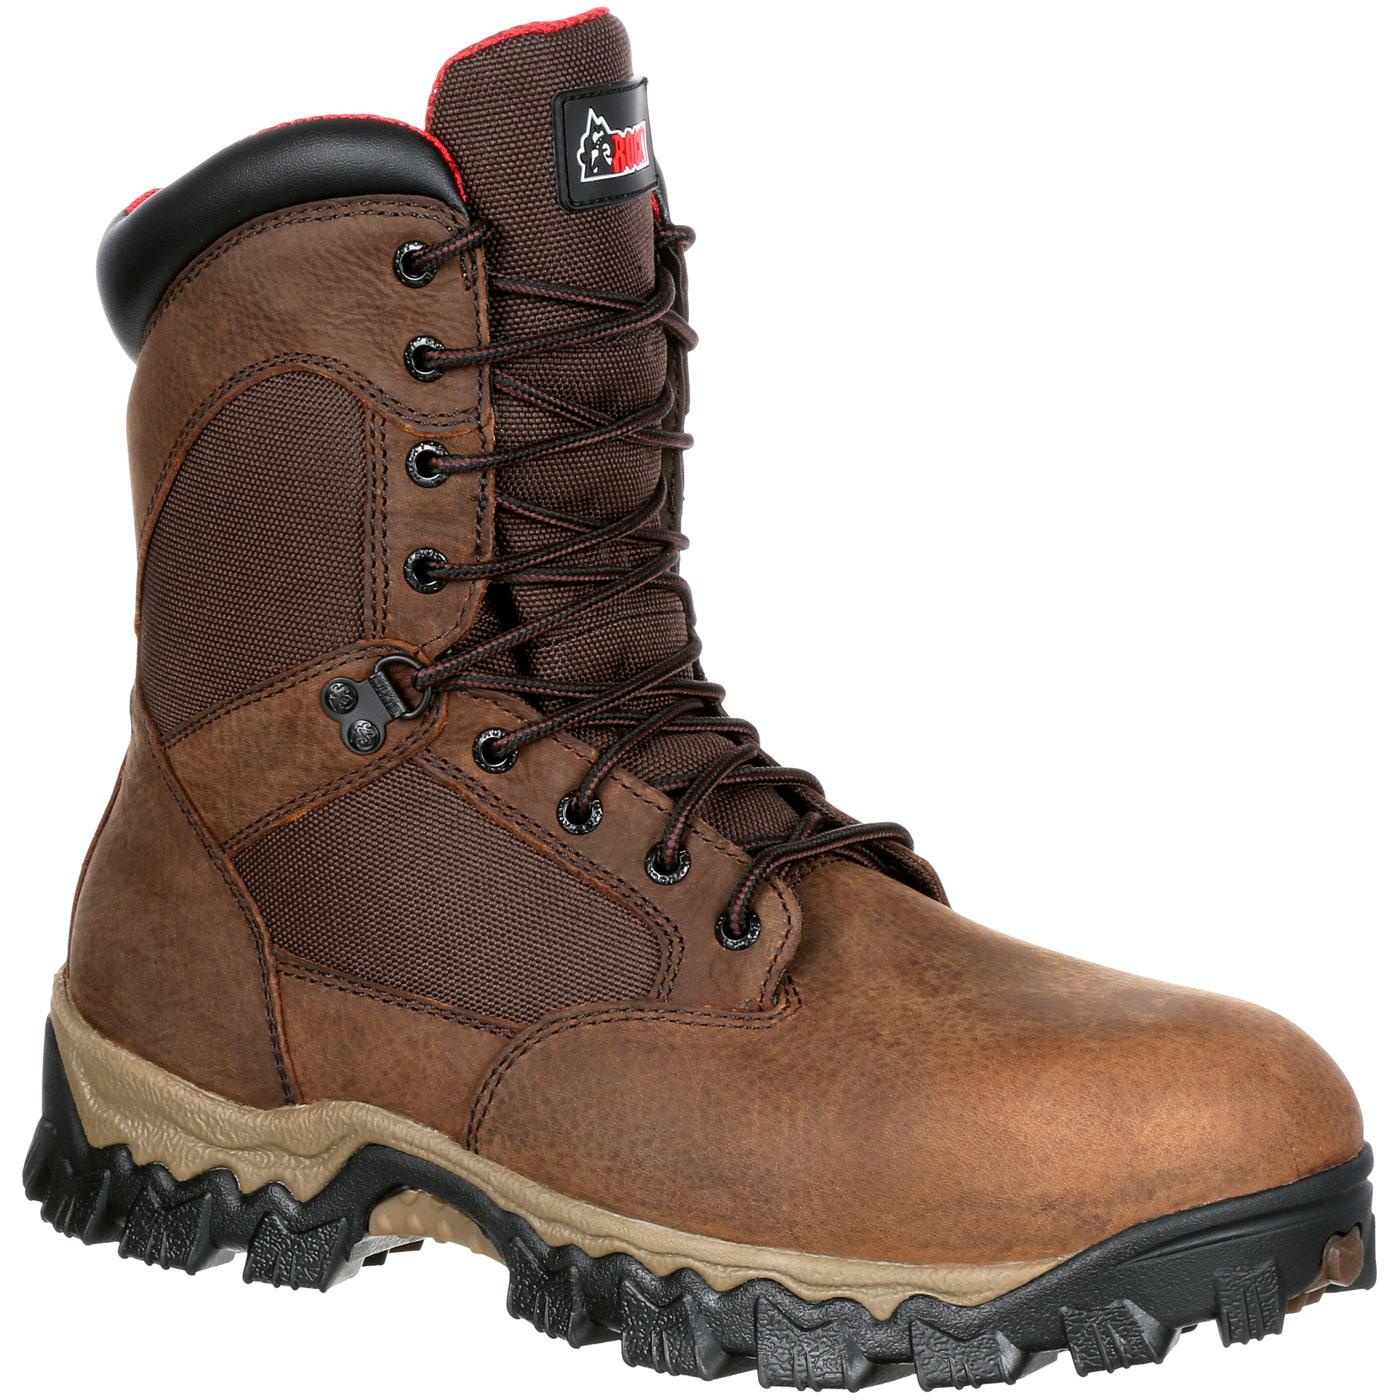 Rocky AlphaForce: Comfort Composite Toe Waterproof Work Boot